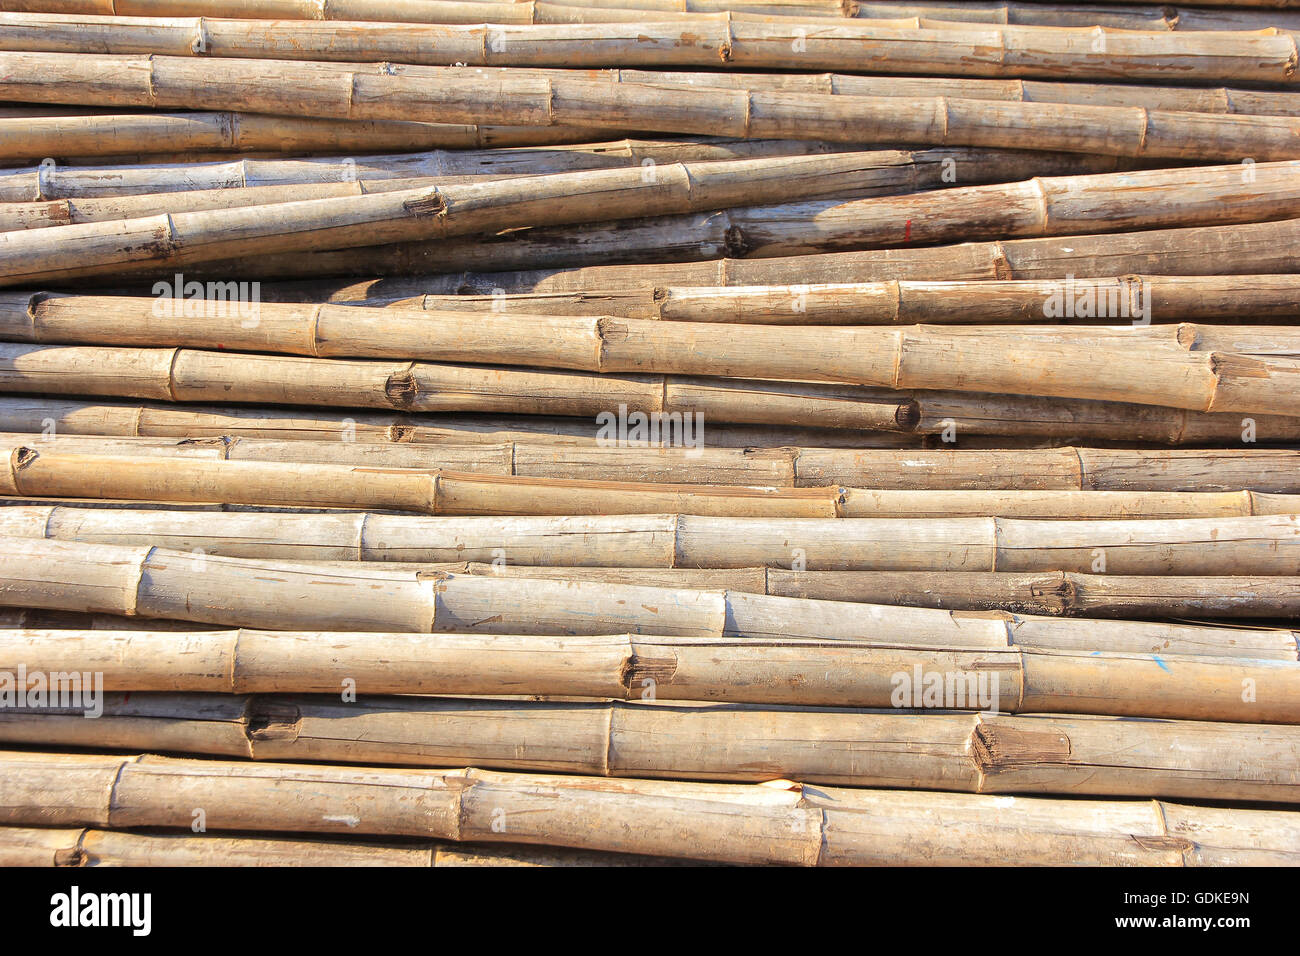 The bamboo used in construction and practical. - Stock Image